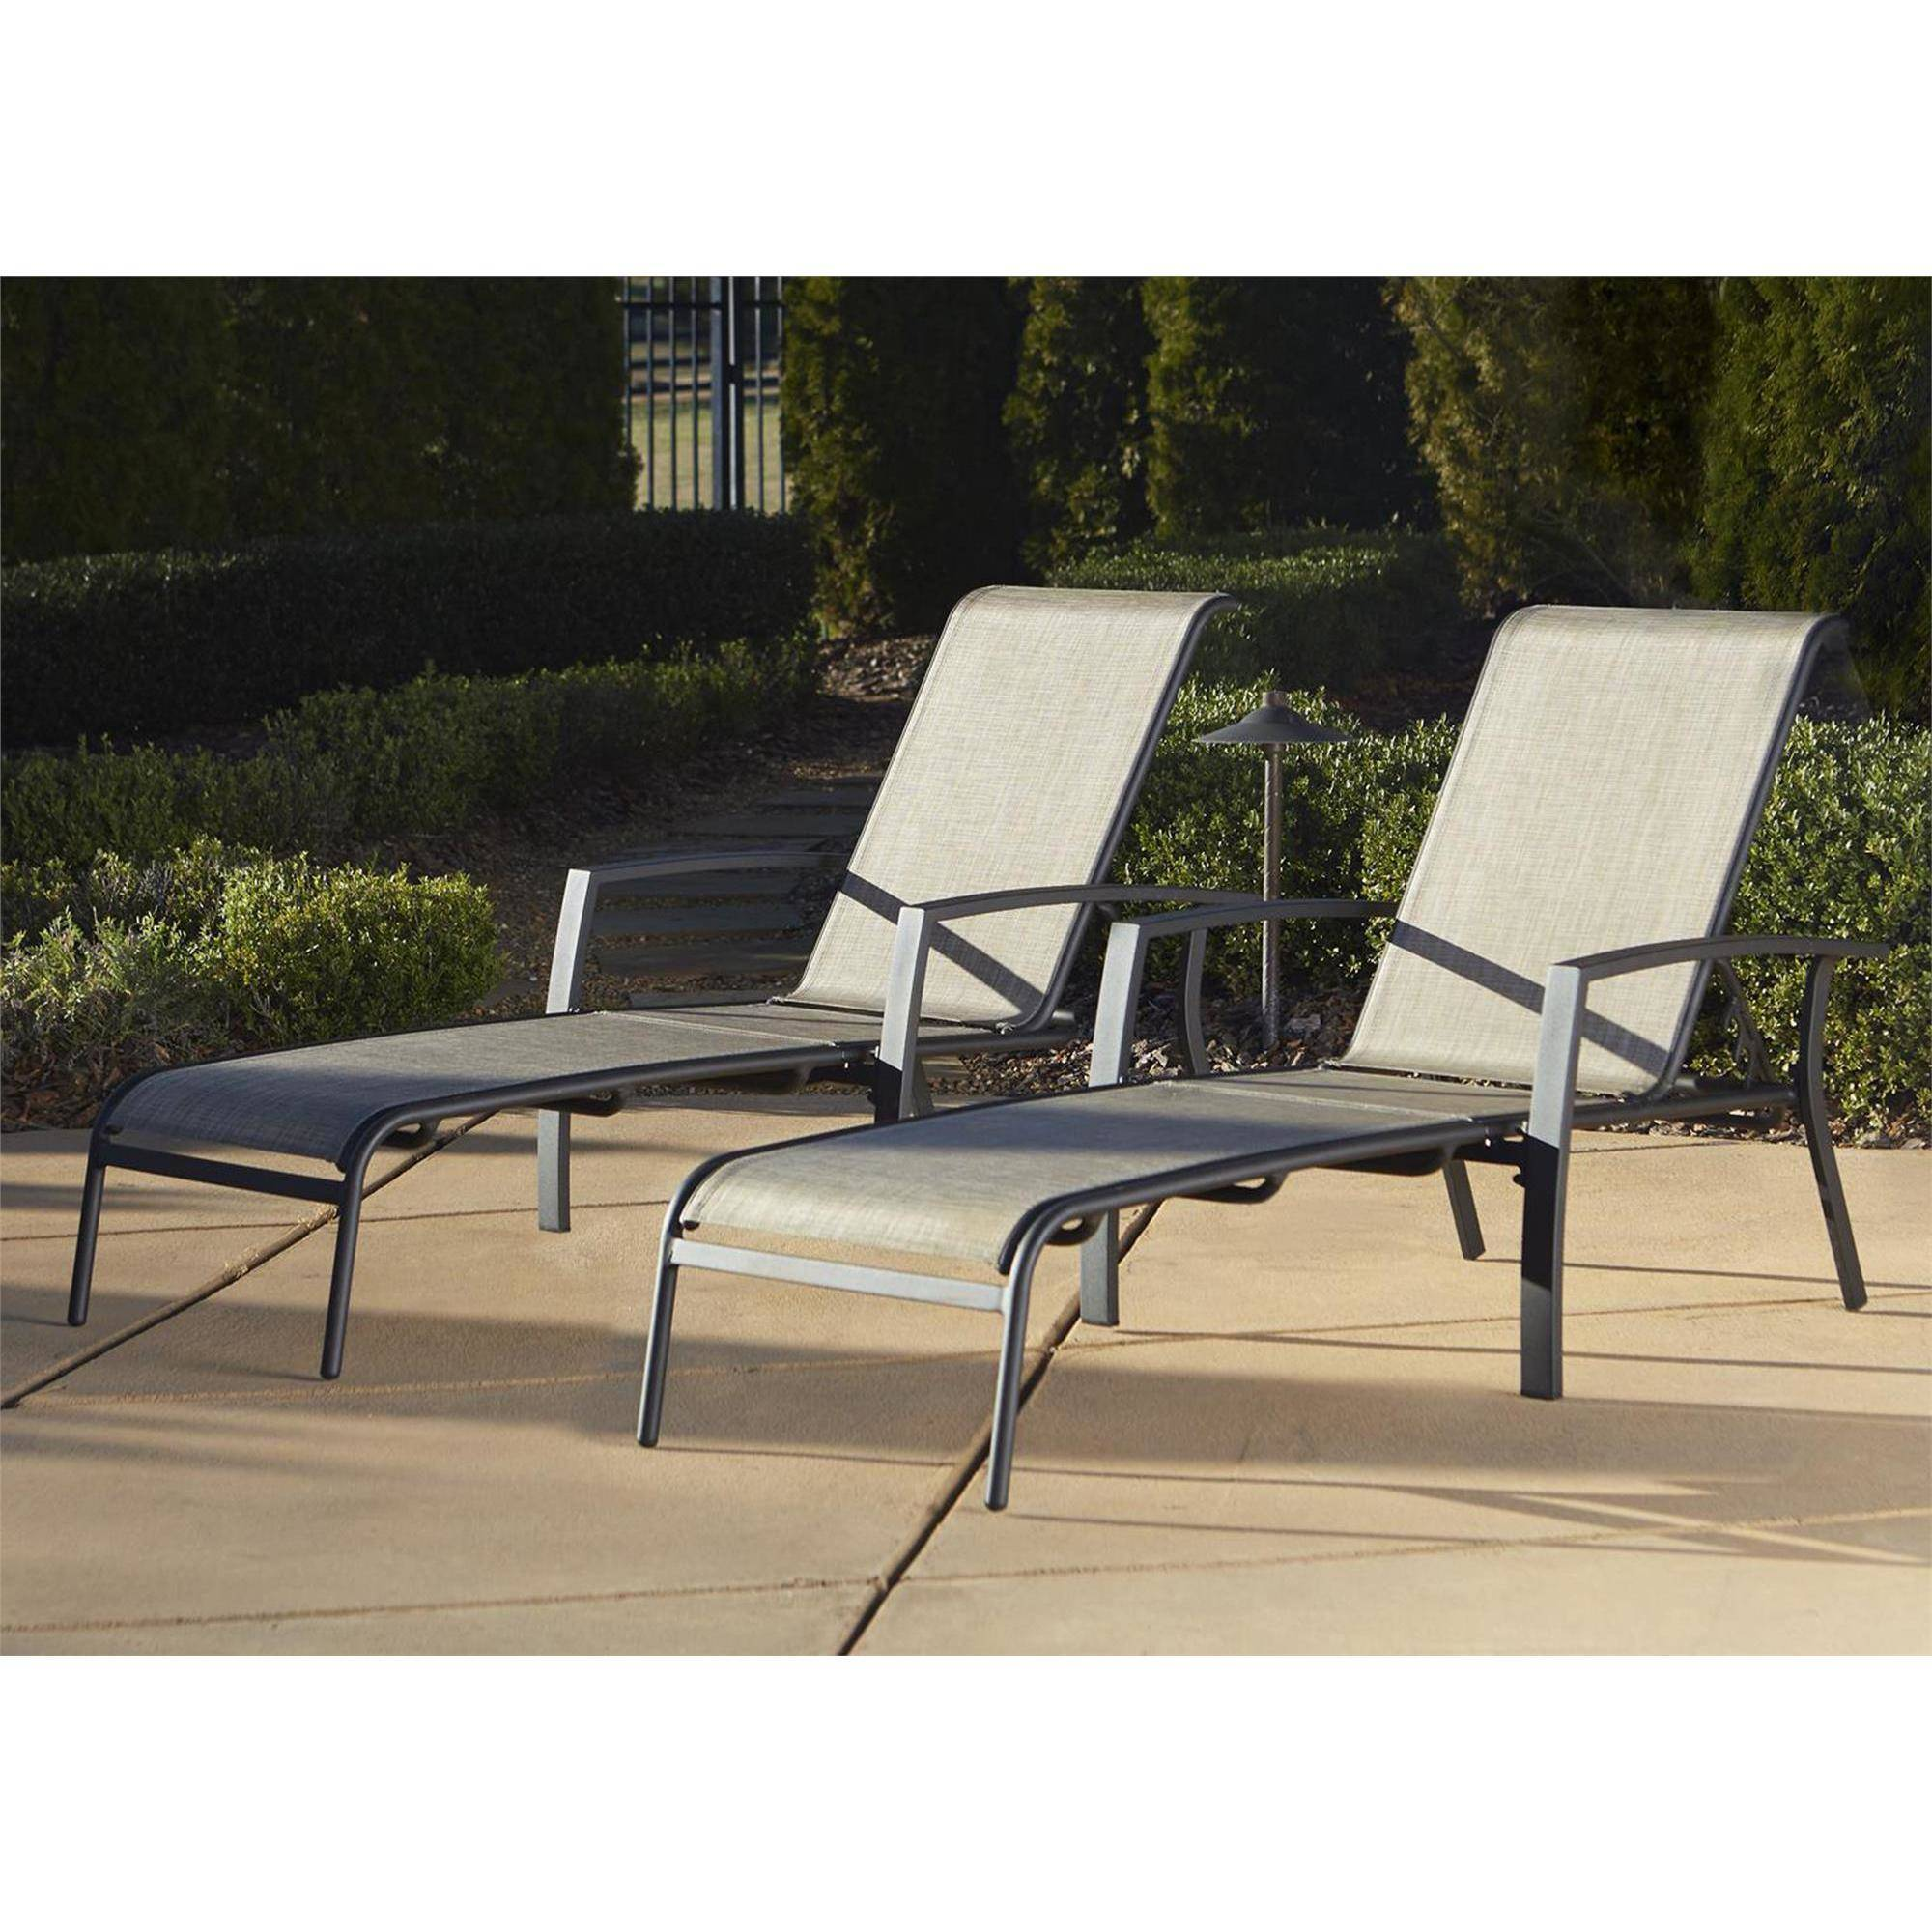 Cosco Outdoor Adjustable Aluminum Chaise Lounge Chair Serene Ridge Set, 2 Pack, Dark Brown